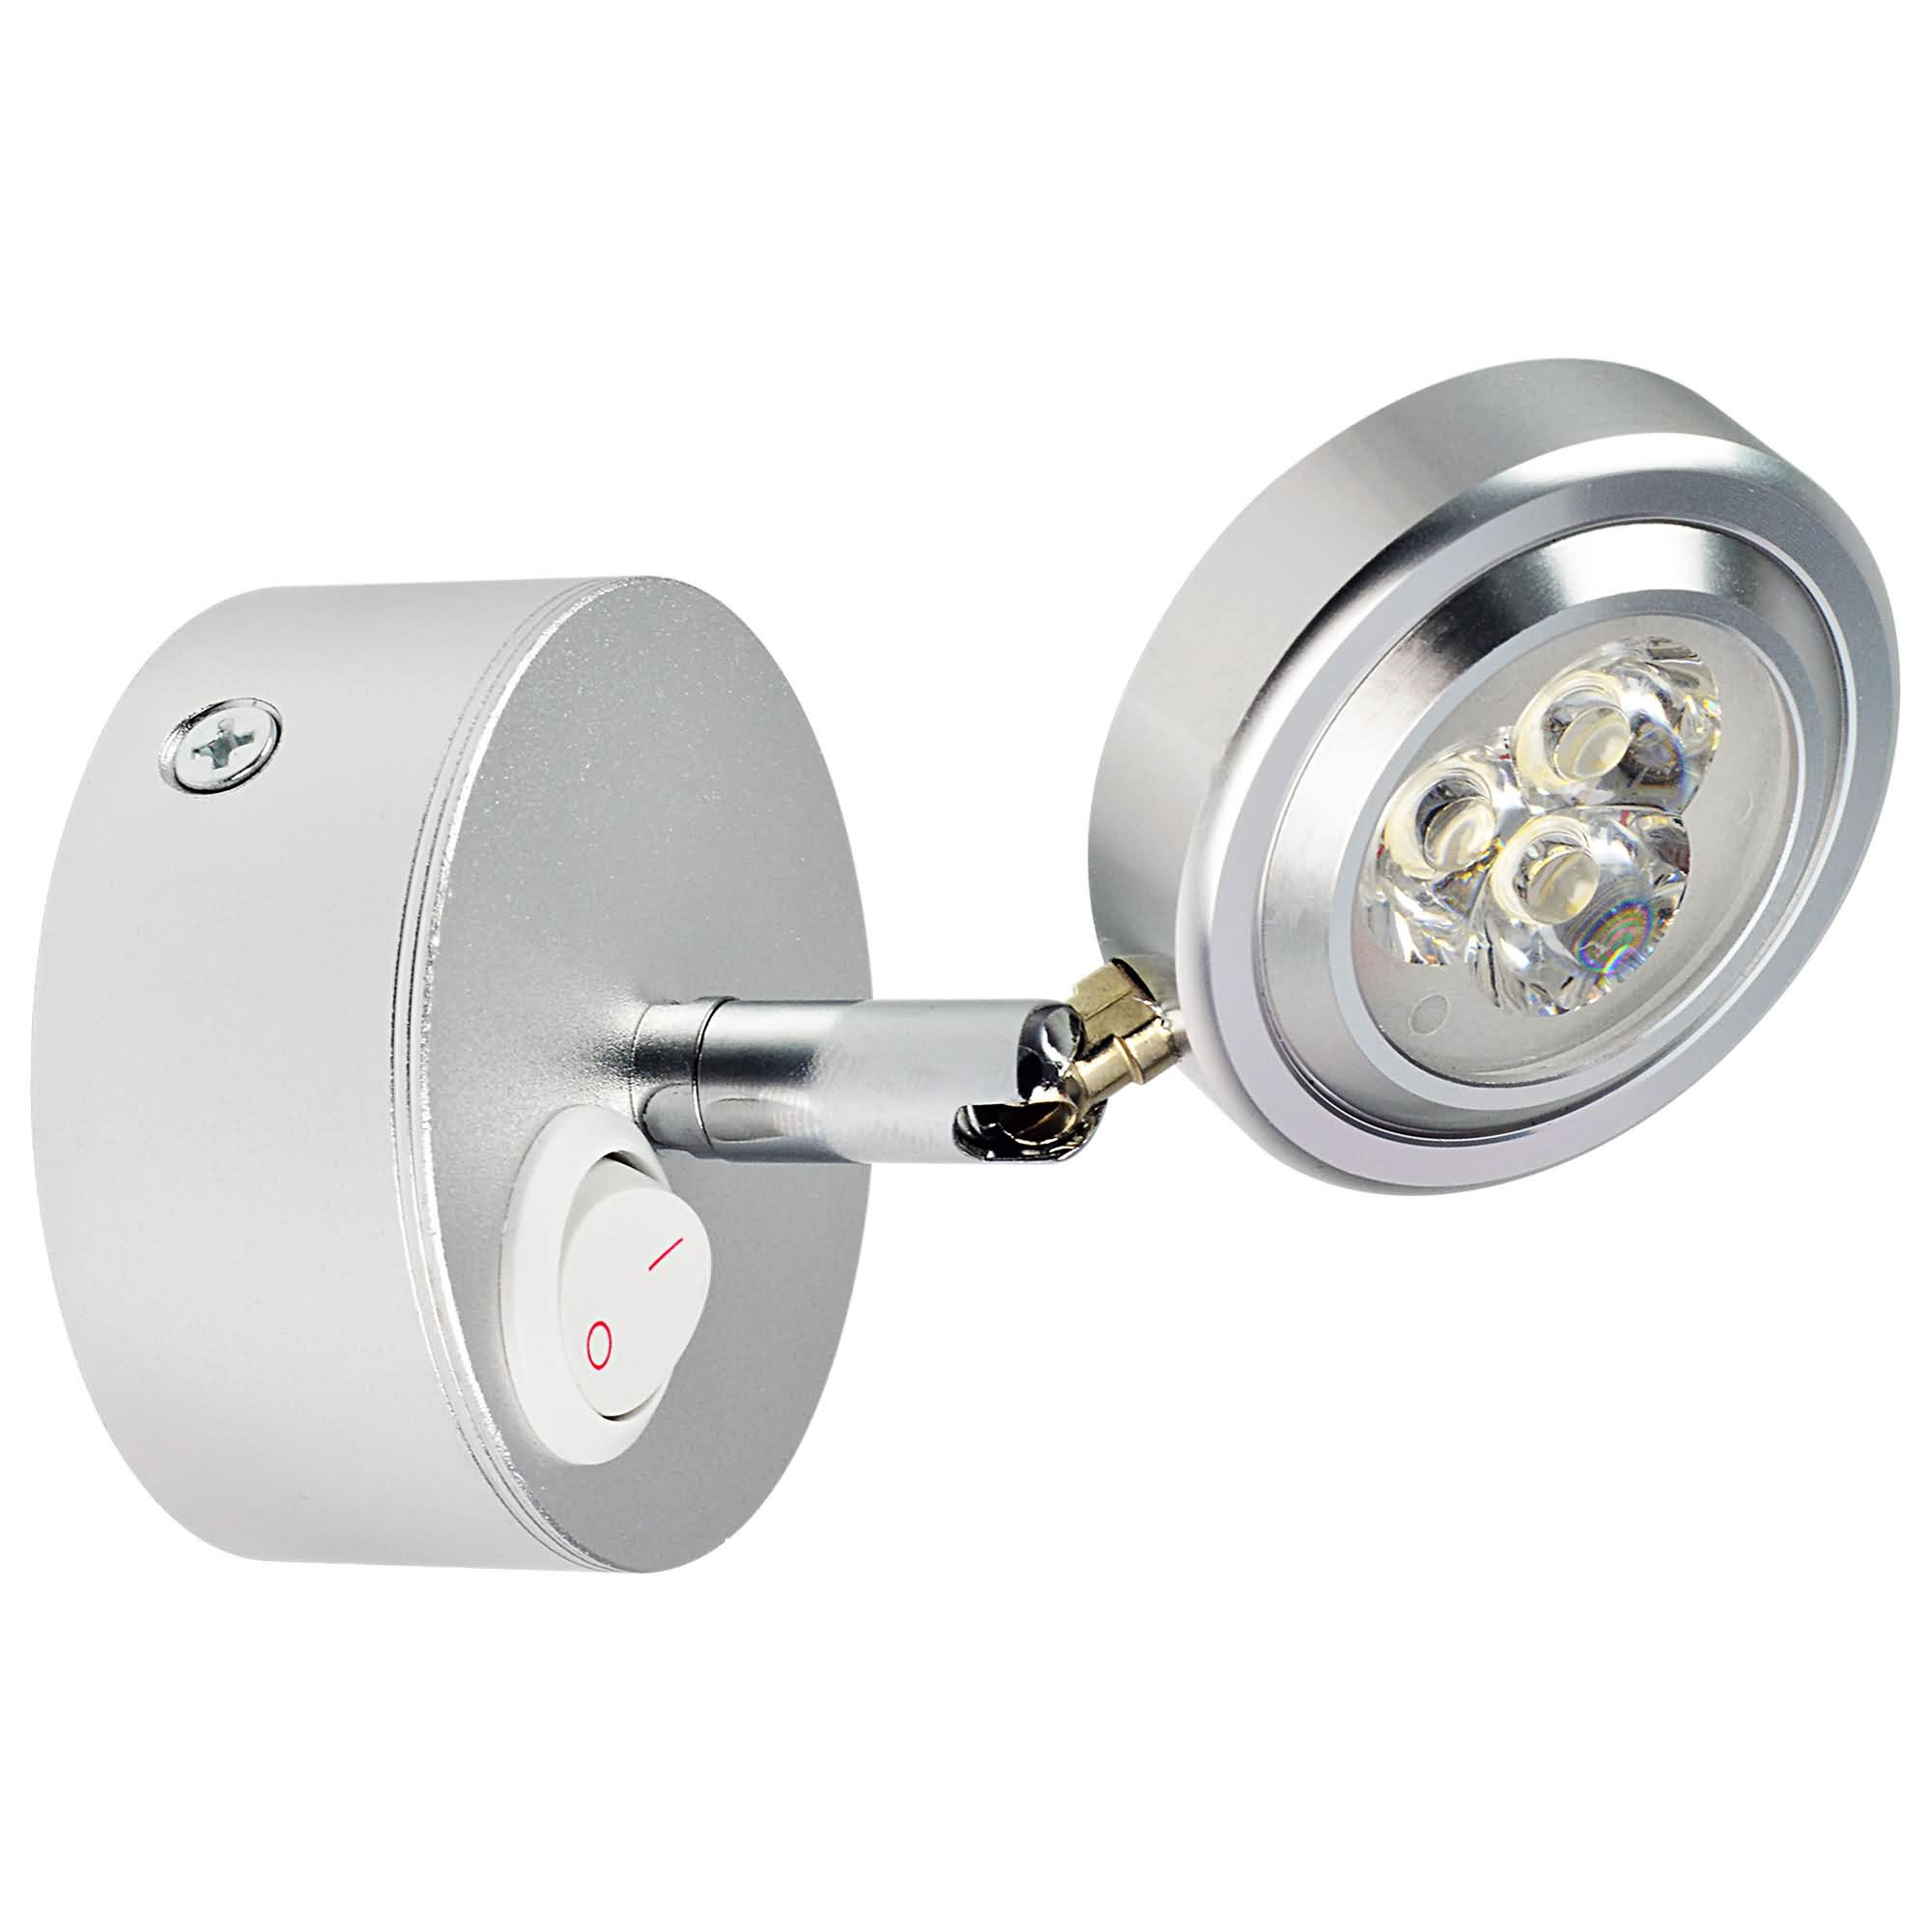 MENGS® CJ-01 3W LED wall lamp/bedside Light with switch button In Cool White Energy-Saving Lamp